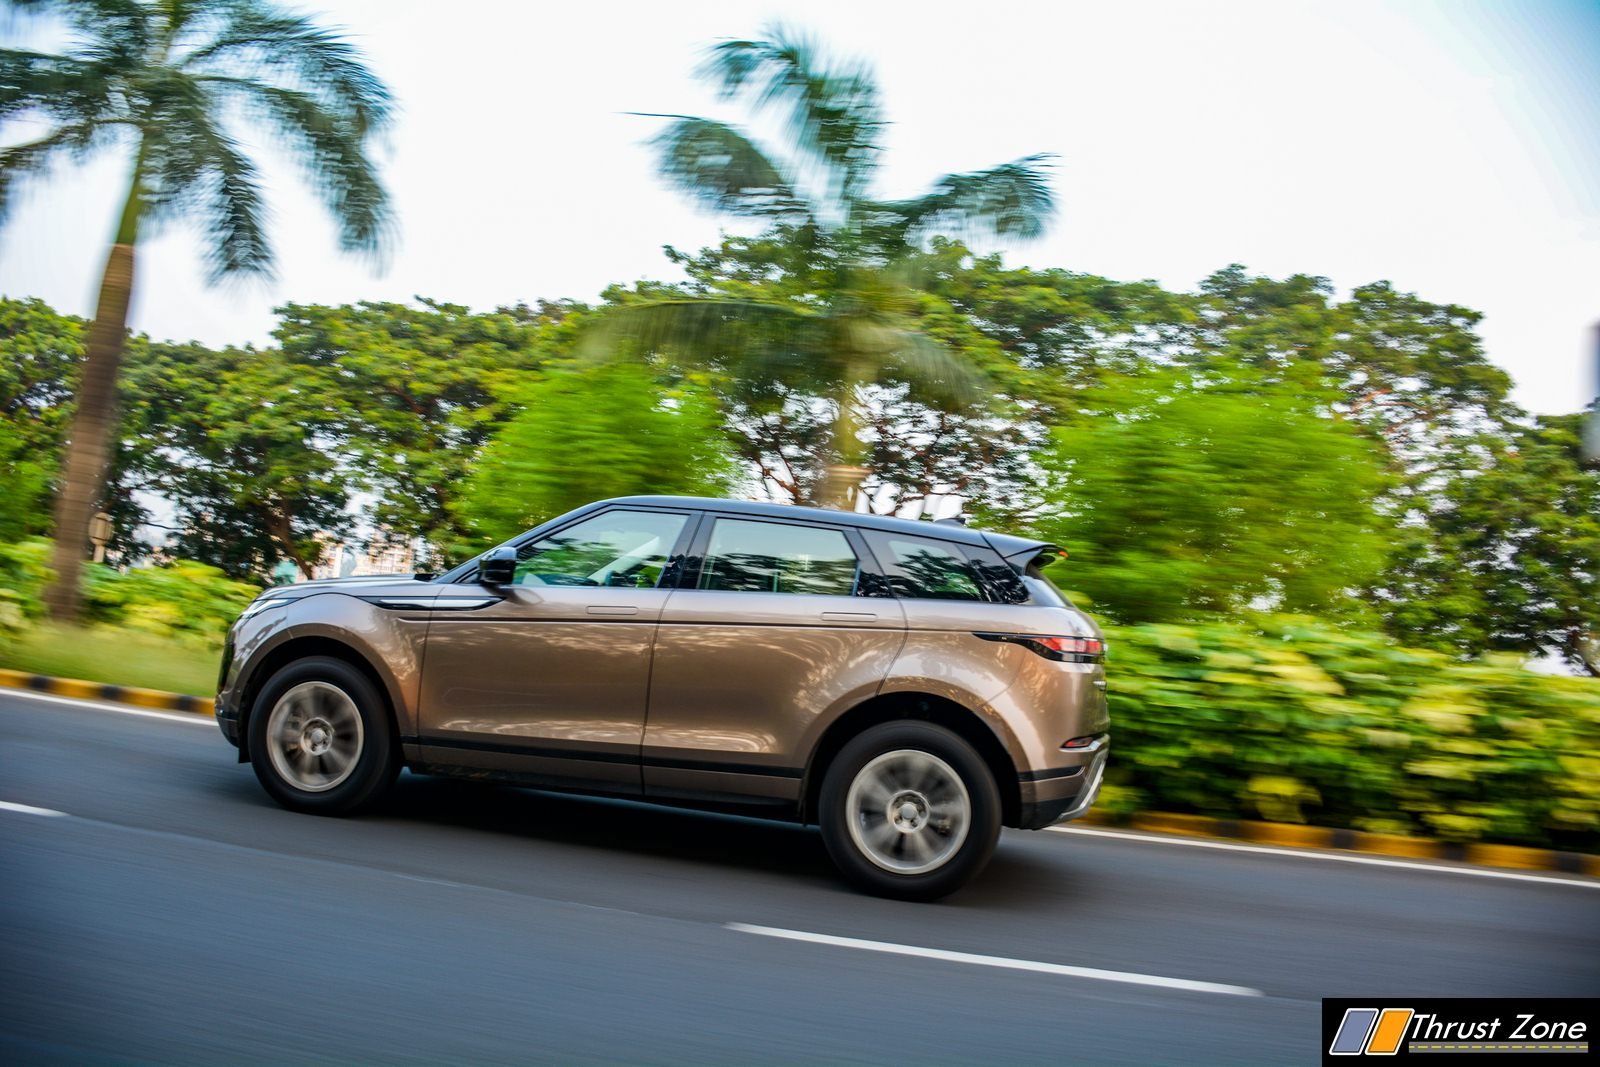 2020-Range-Rover-Evoque-Diesel-India-Review-17